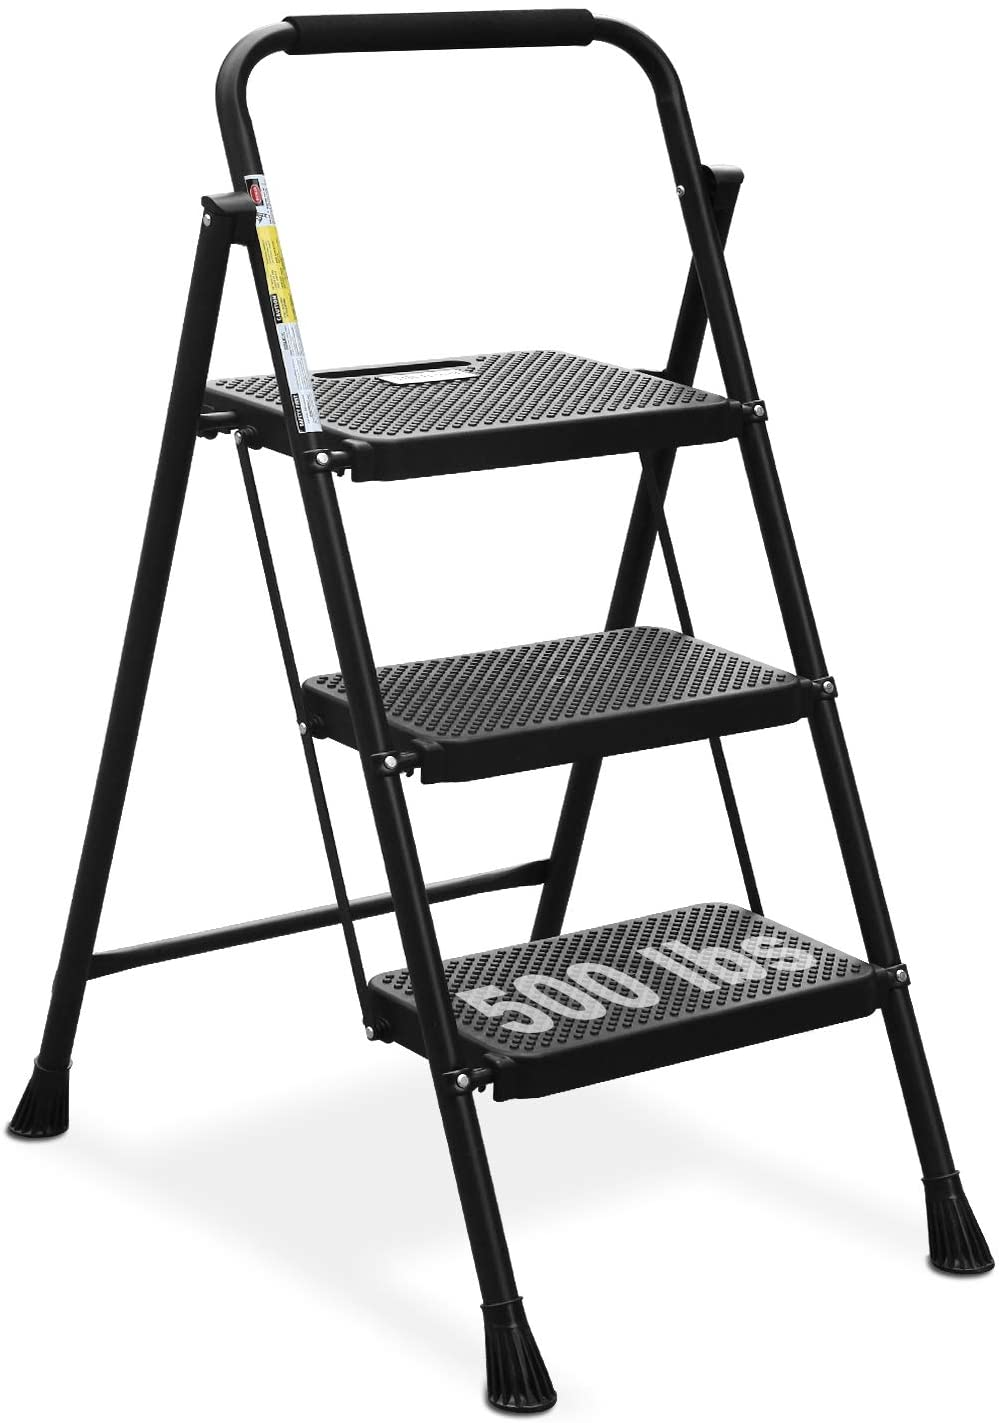 Step Ladder for Portrait Photography